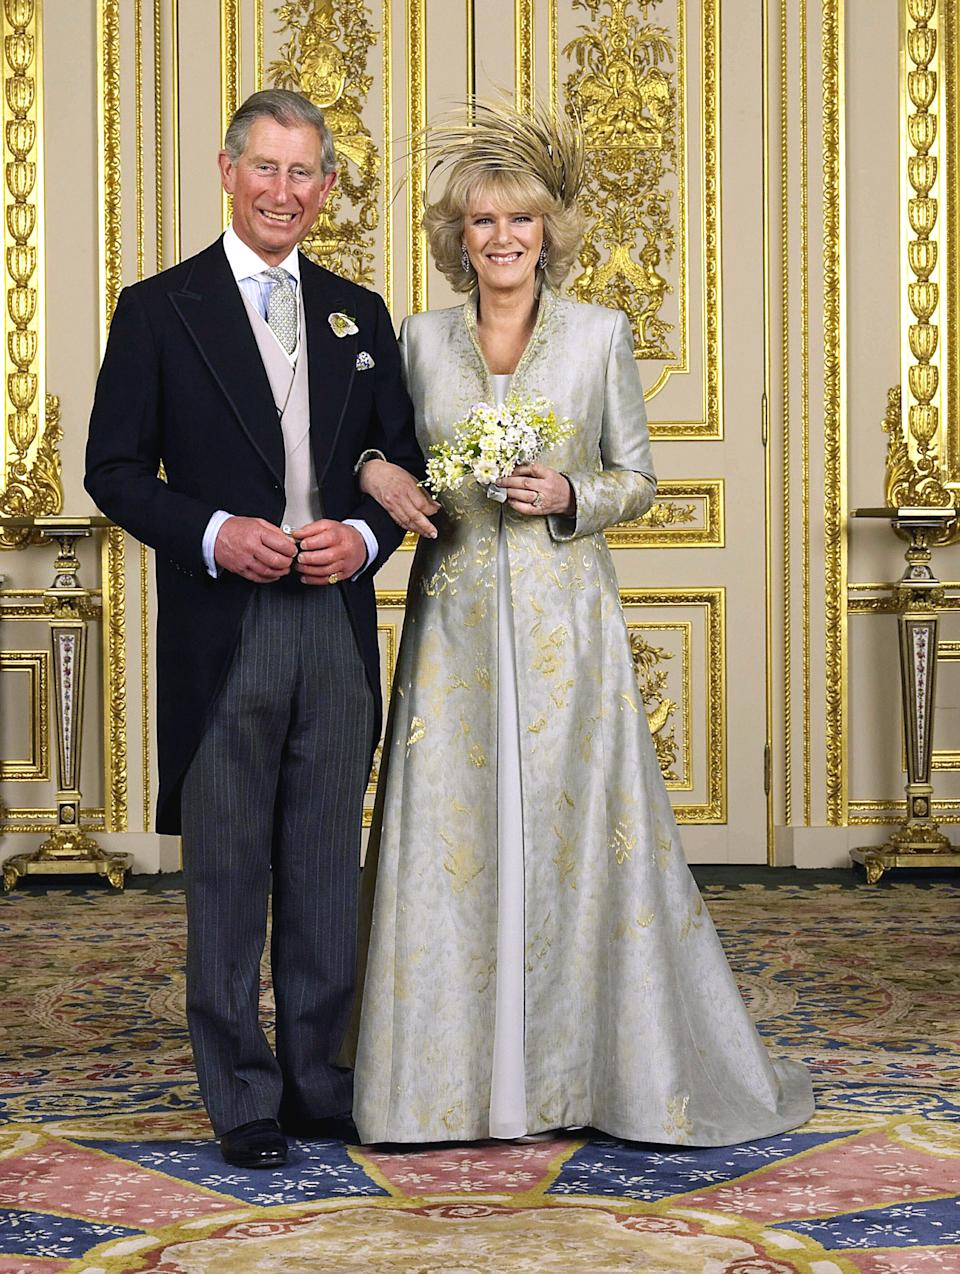 Charles and Camilla on their wedding day in 2005. [Photo: PA]